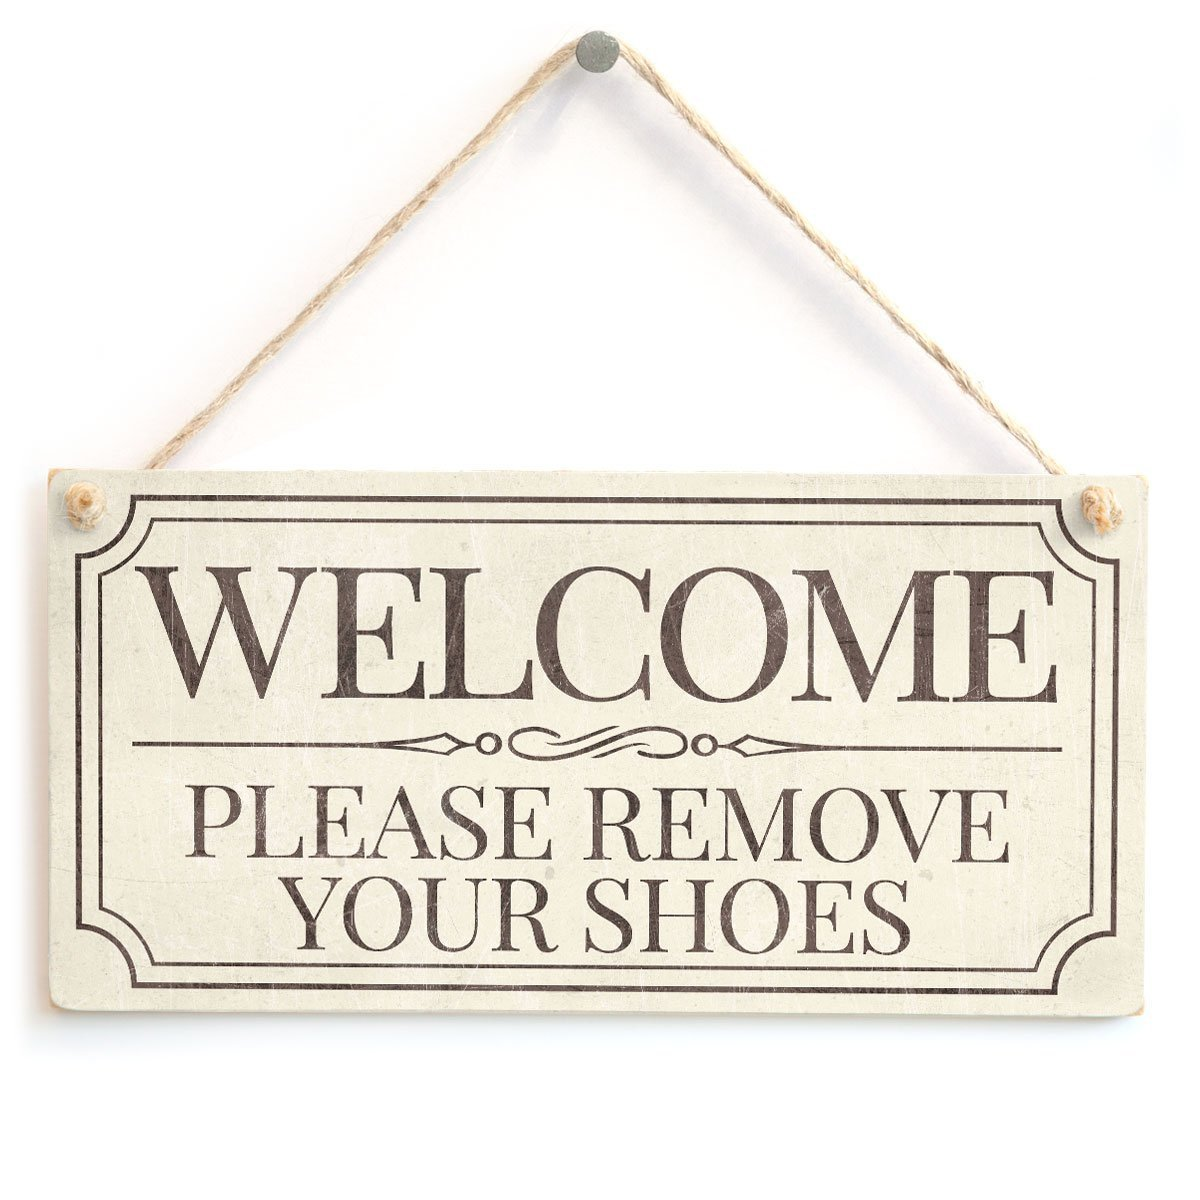 Welcome Please Remove Your Shoes - Lovely Vintage Style Handmade Sign Take Off Shoes Plaque Wooden Hanging Sign 4'' X 8''